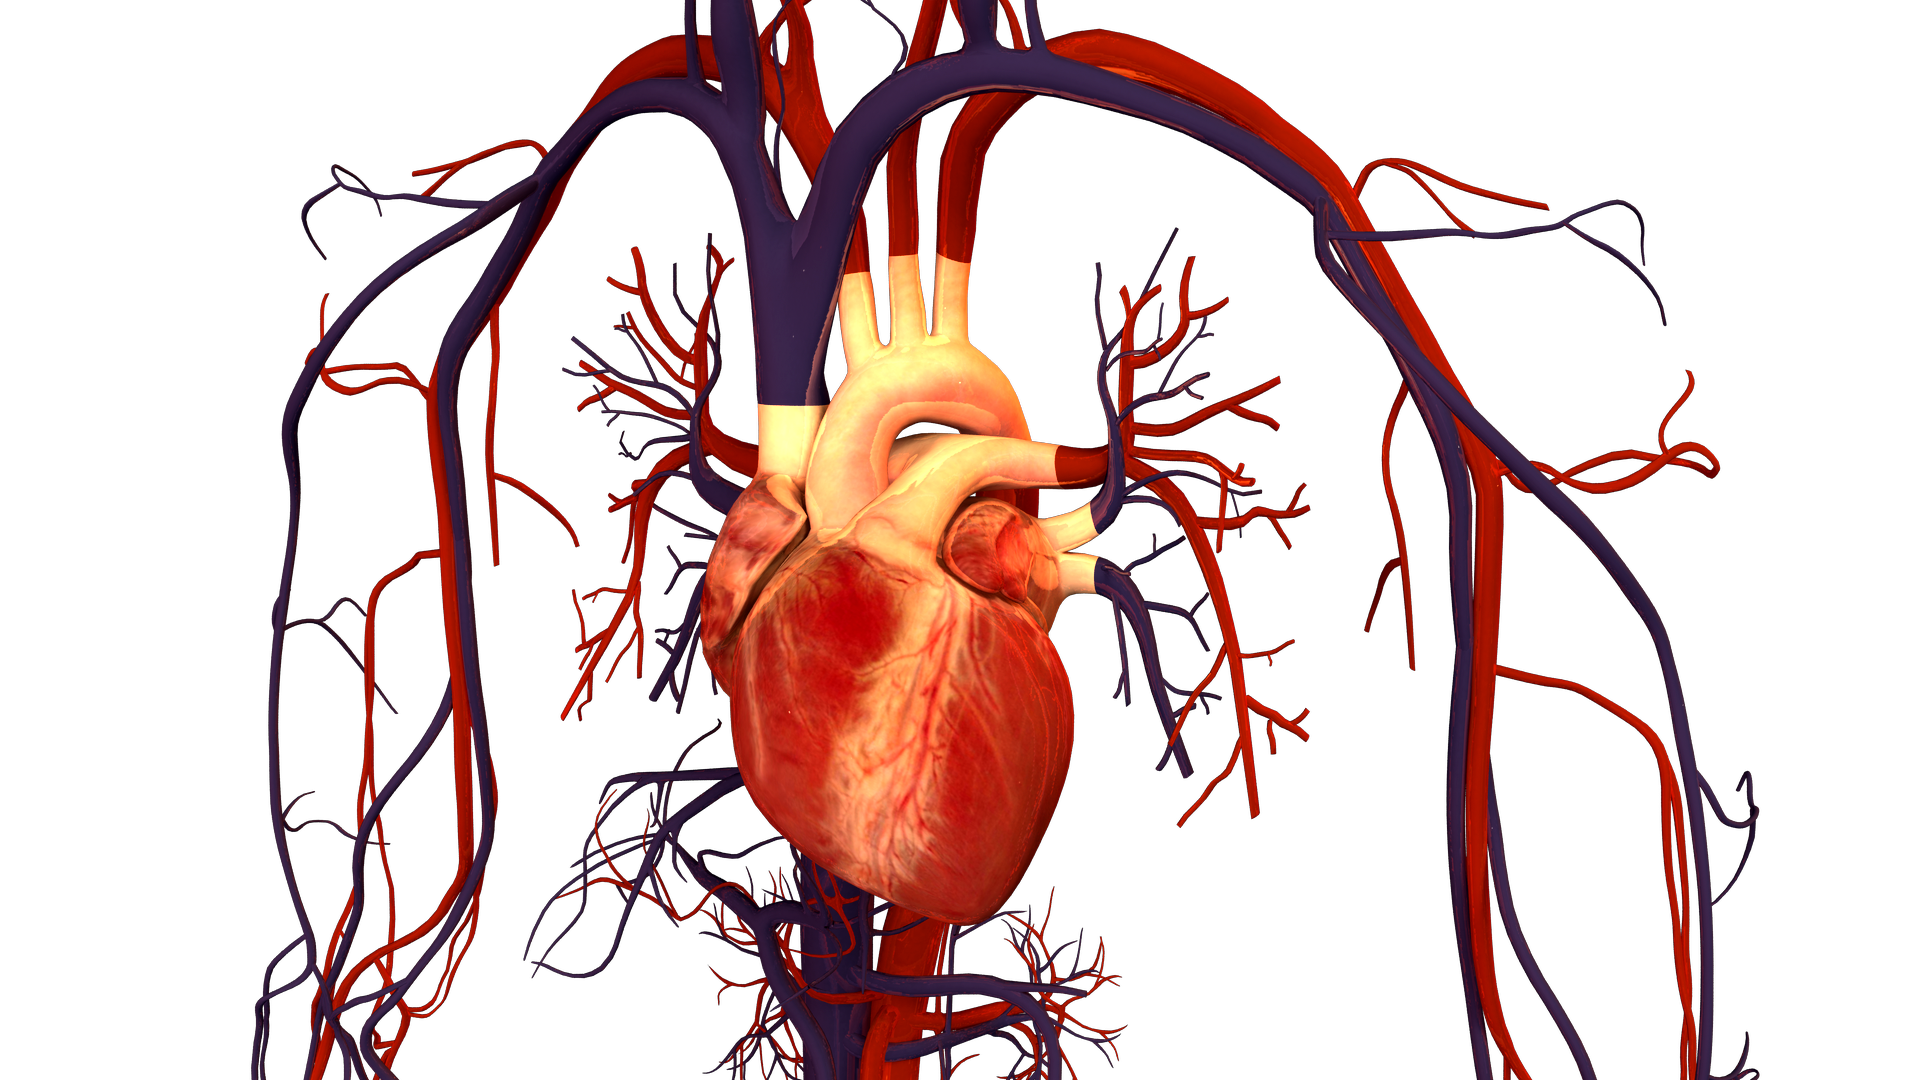 Human_Heart_and_Circulatory_System.png